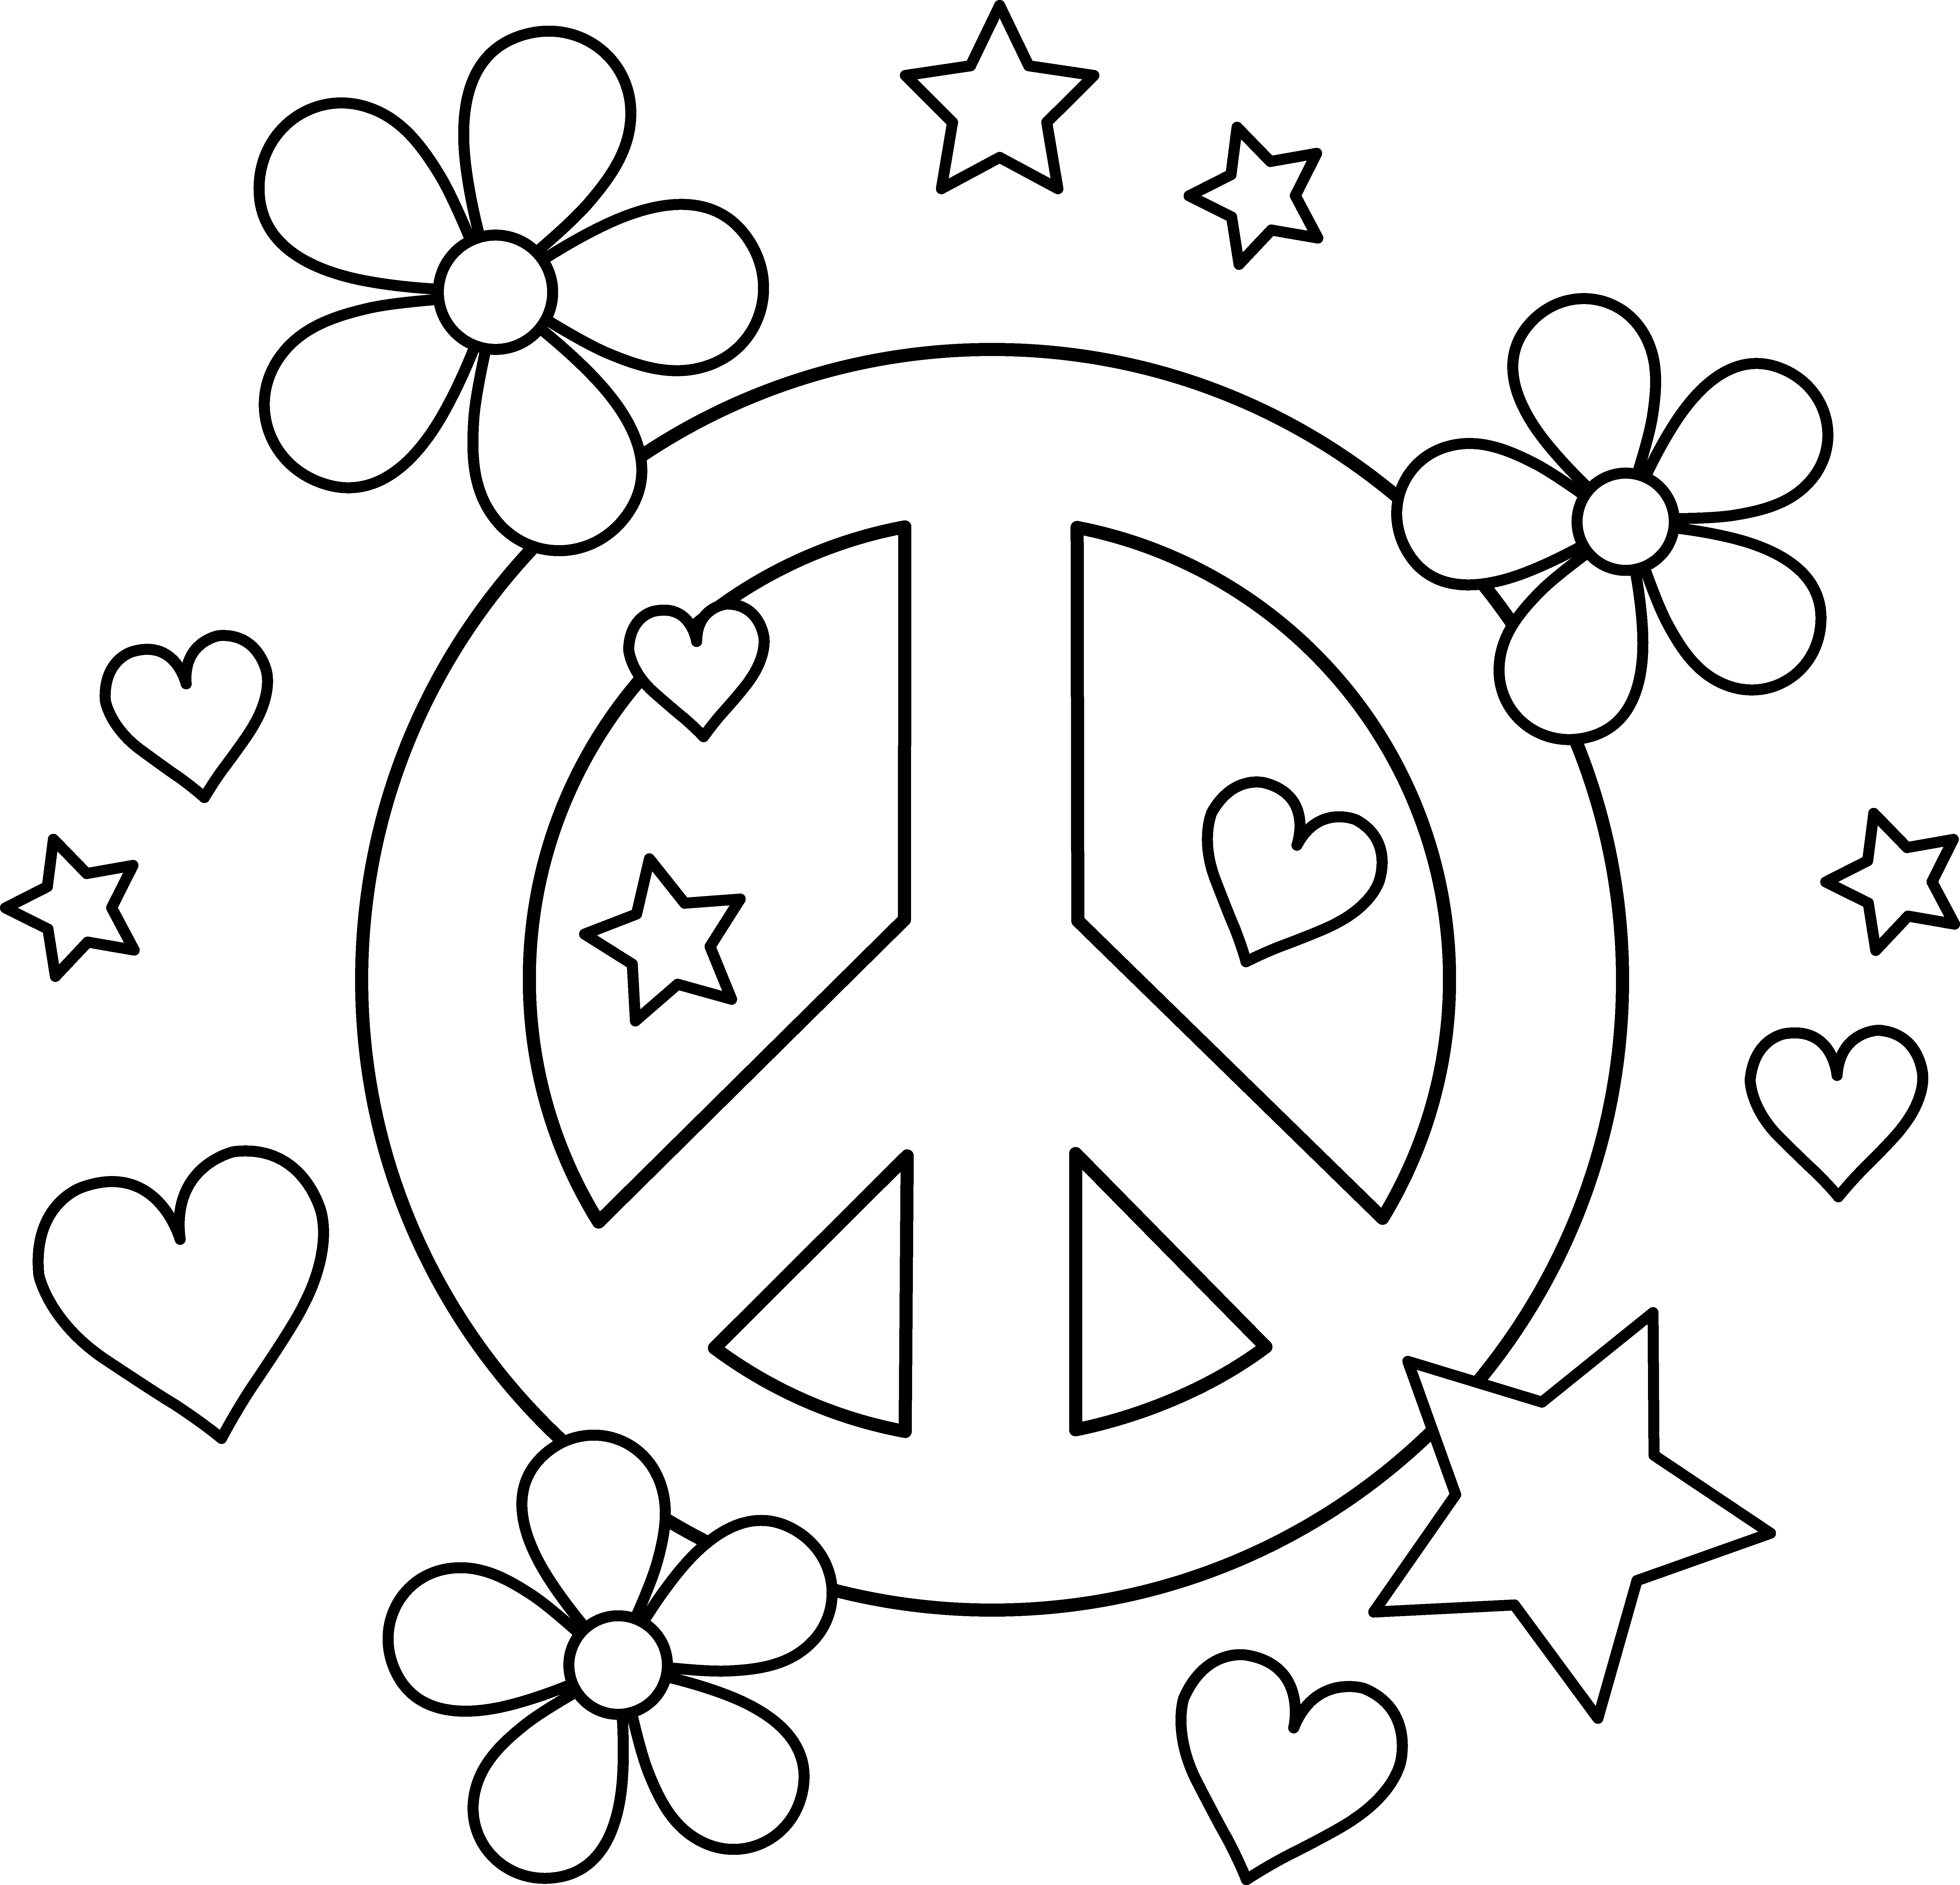 free printable peace sign coloring pages peace coloring pages to download and print for free free sign coloring peace printable pages